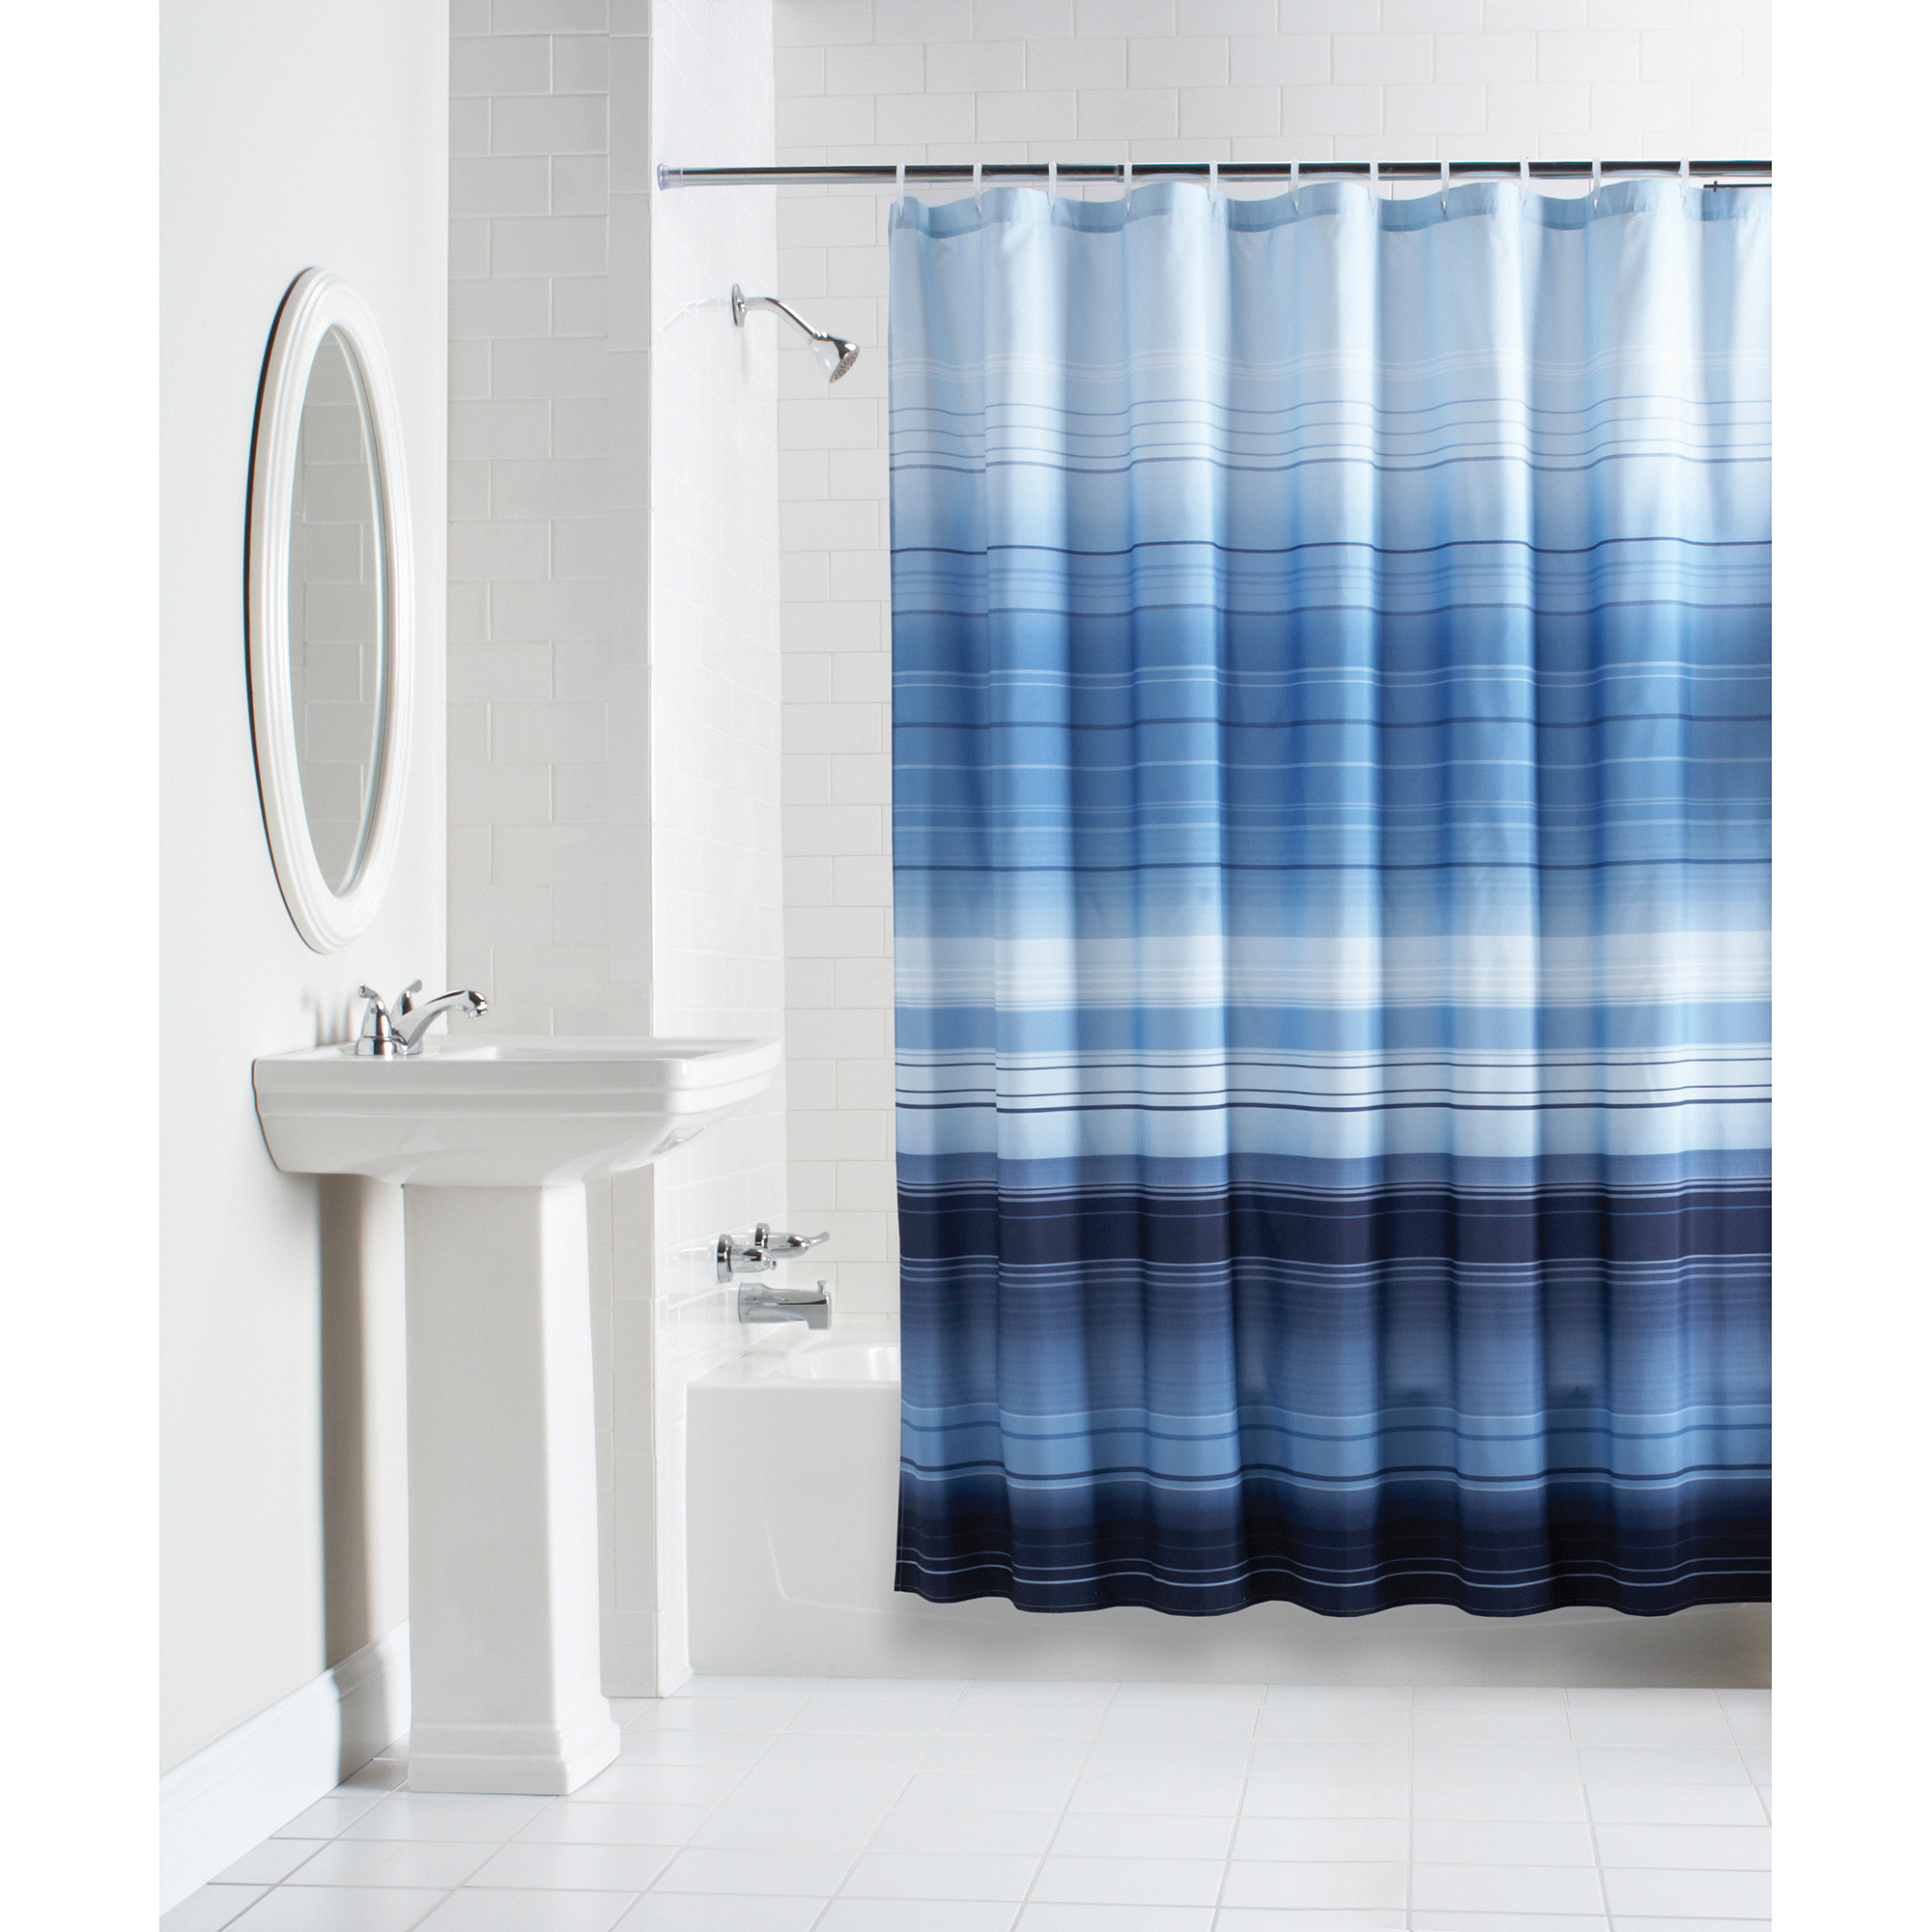 Bathroom curtains from walmart - Mainstays Ombre Stripe Fabric Shower Curtain